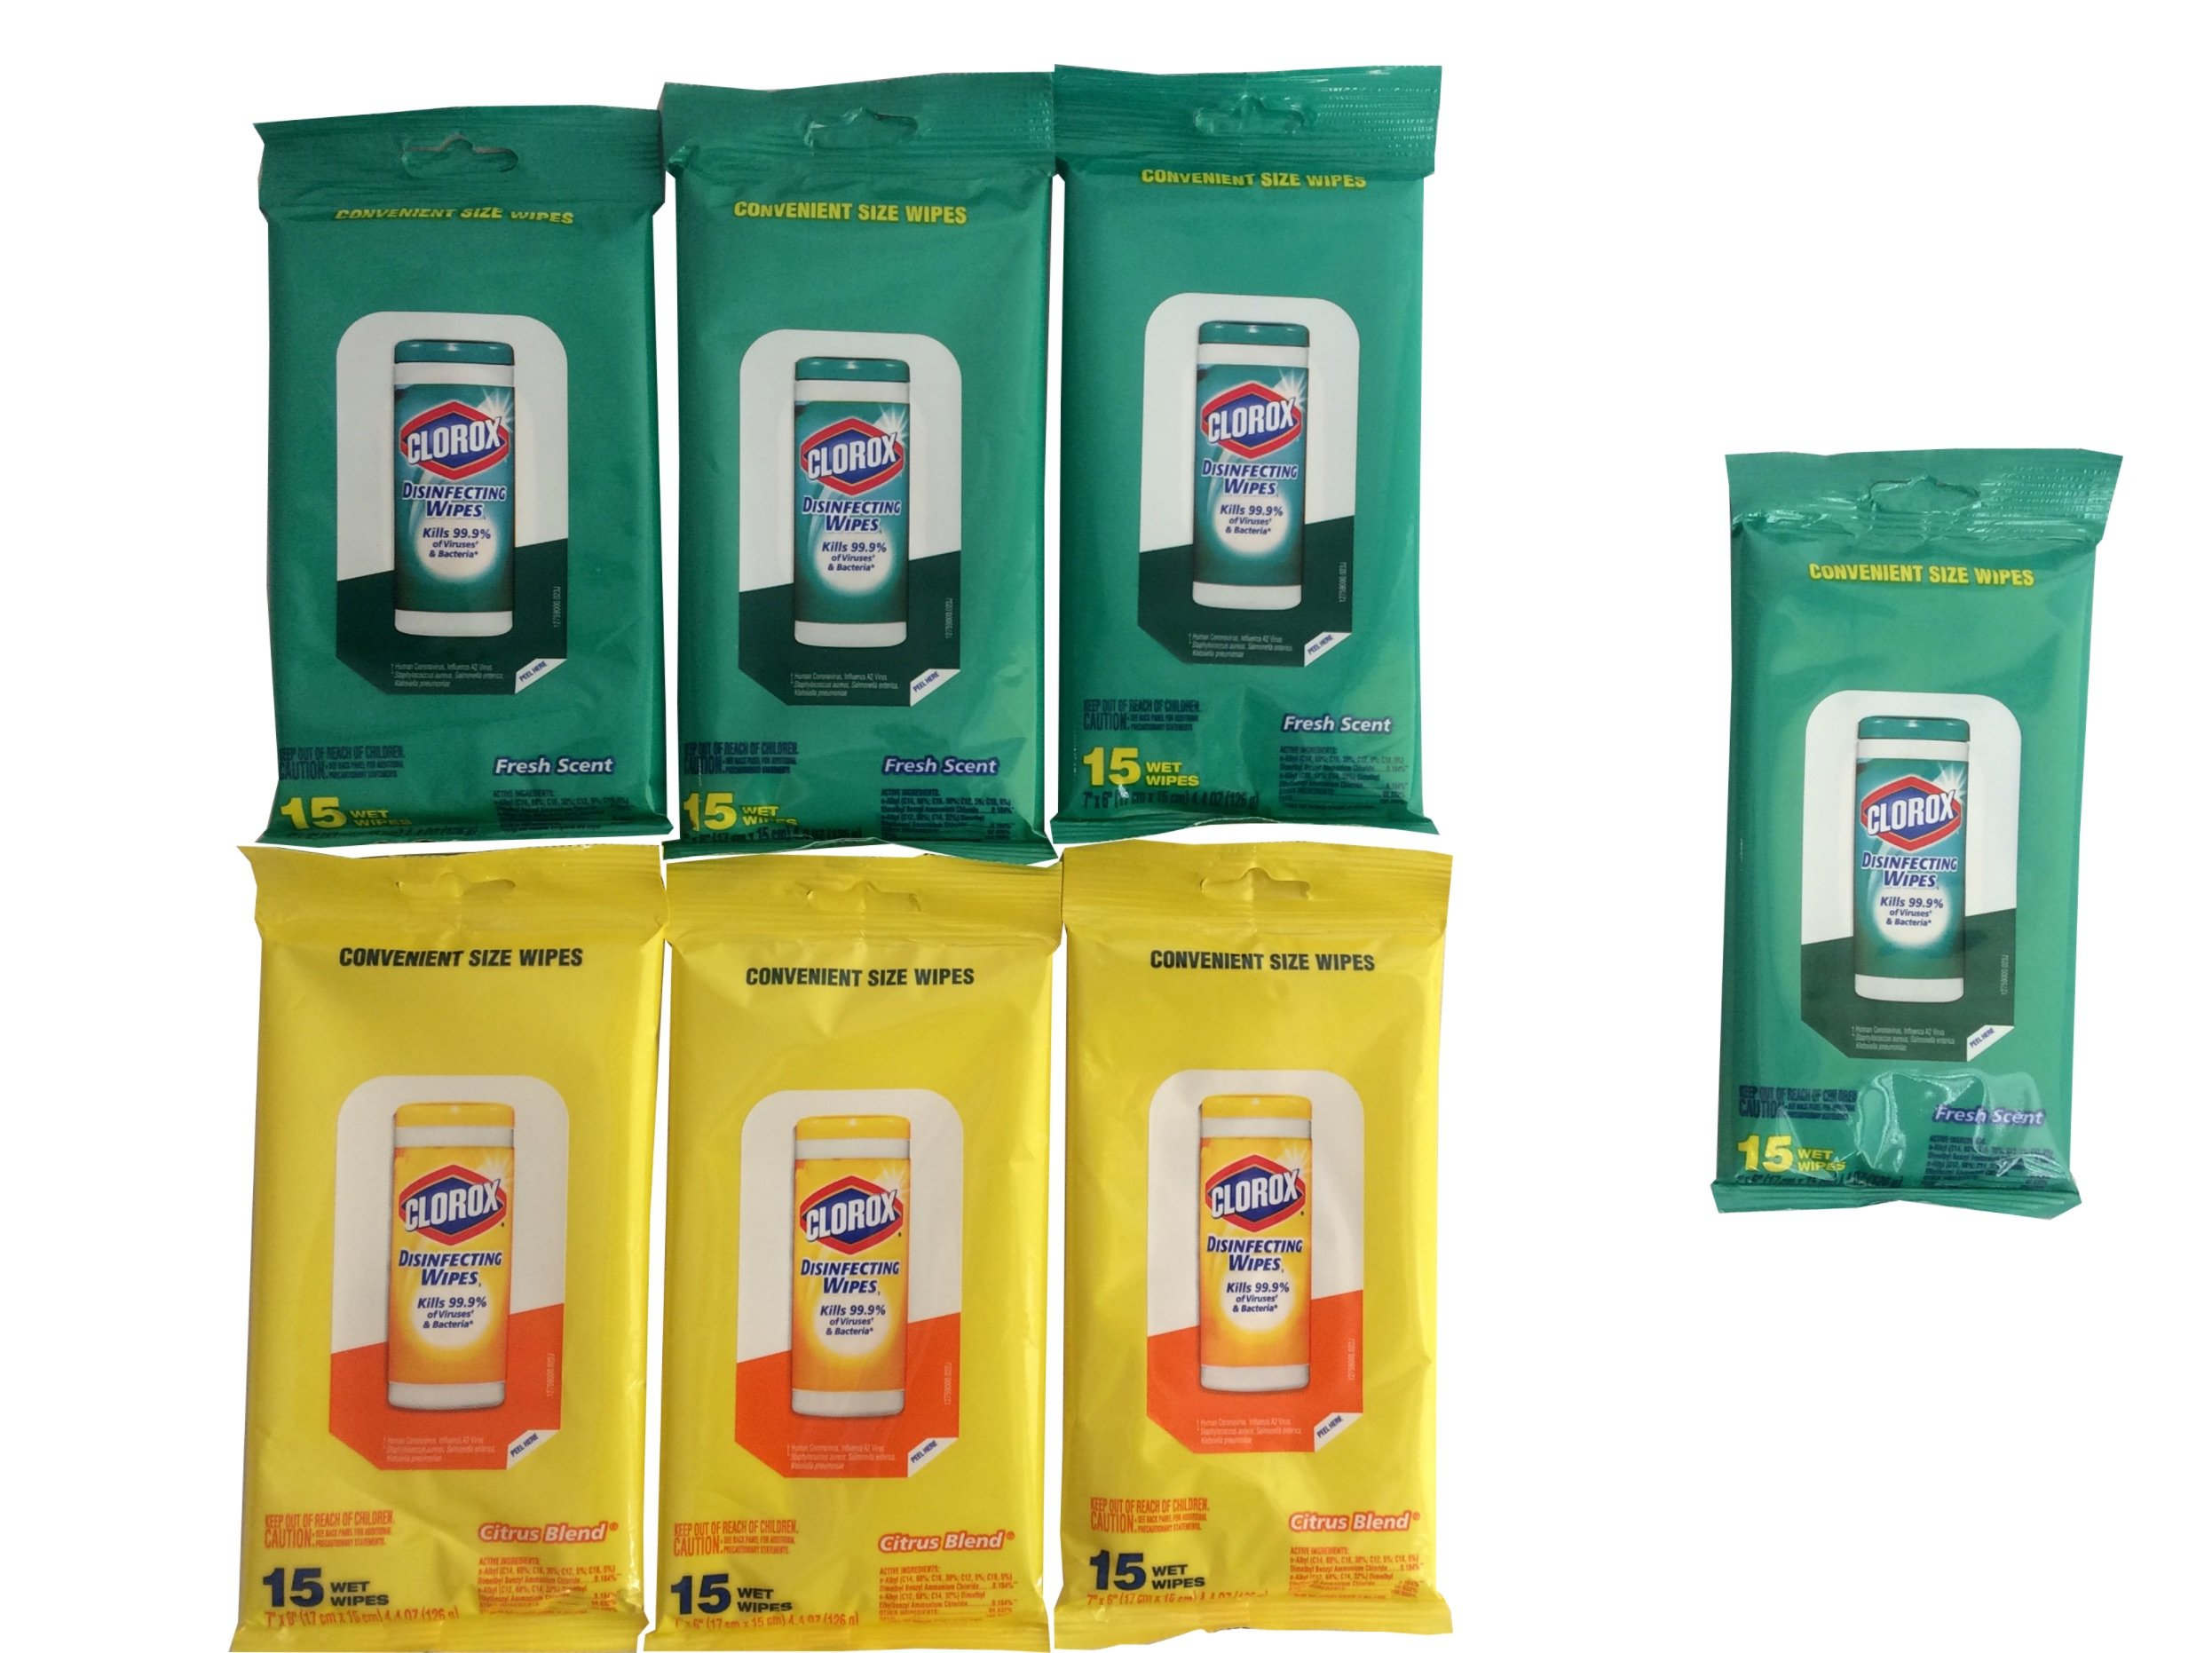 Clorox Disinfecting Wipes (7 Packs) Travel Size, 4 Fresh Scent Packages & 3 Citrus Scent Packages (105 Wipes Total) Value Pack To Go Bundle